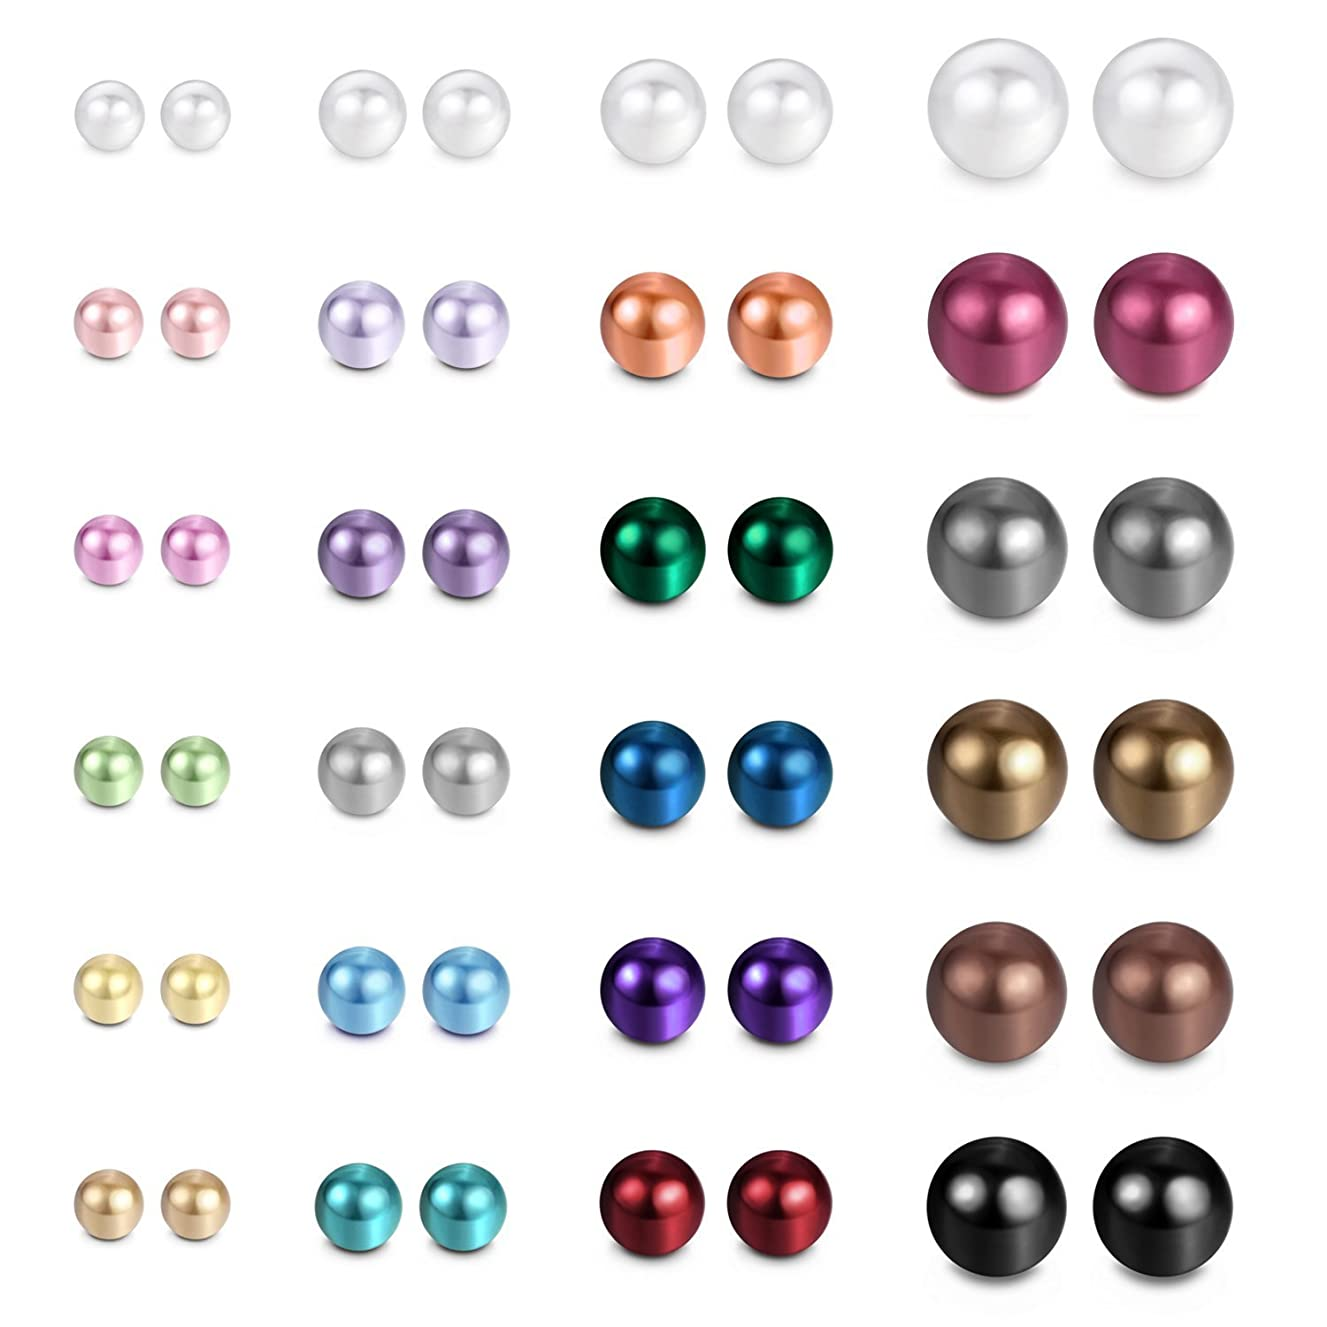 JewelrieShop Assorted Mixed Color Wholesale Lot Imitation Pearl Earrings Studs Gift Set, Hypoallergenic Stainless Steel, Stud Earrings for Women and Girl (24 pairs/multicolor ball studs set)